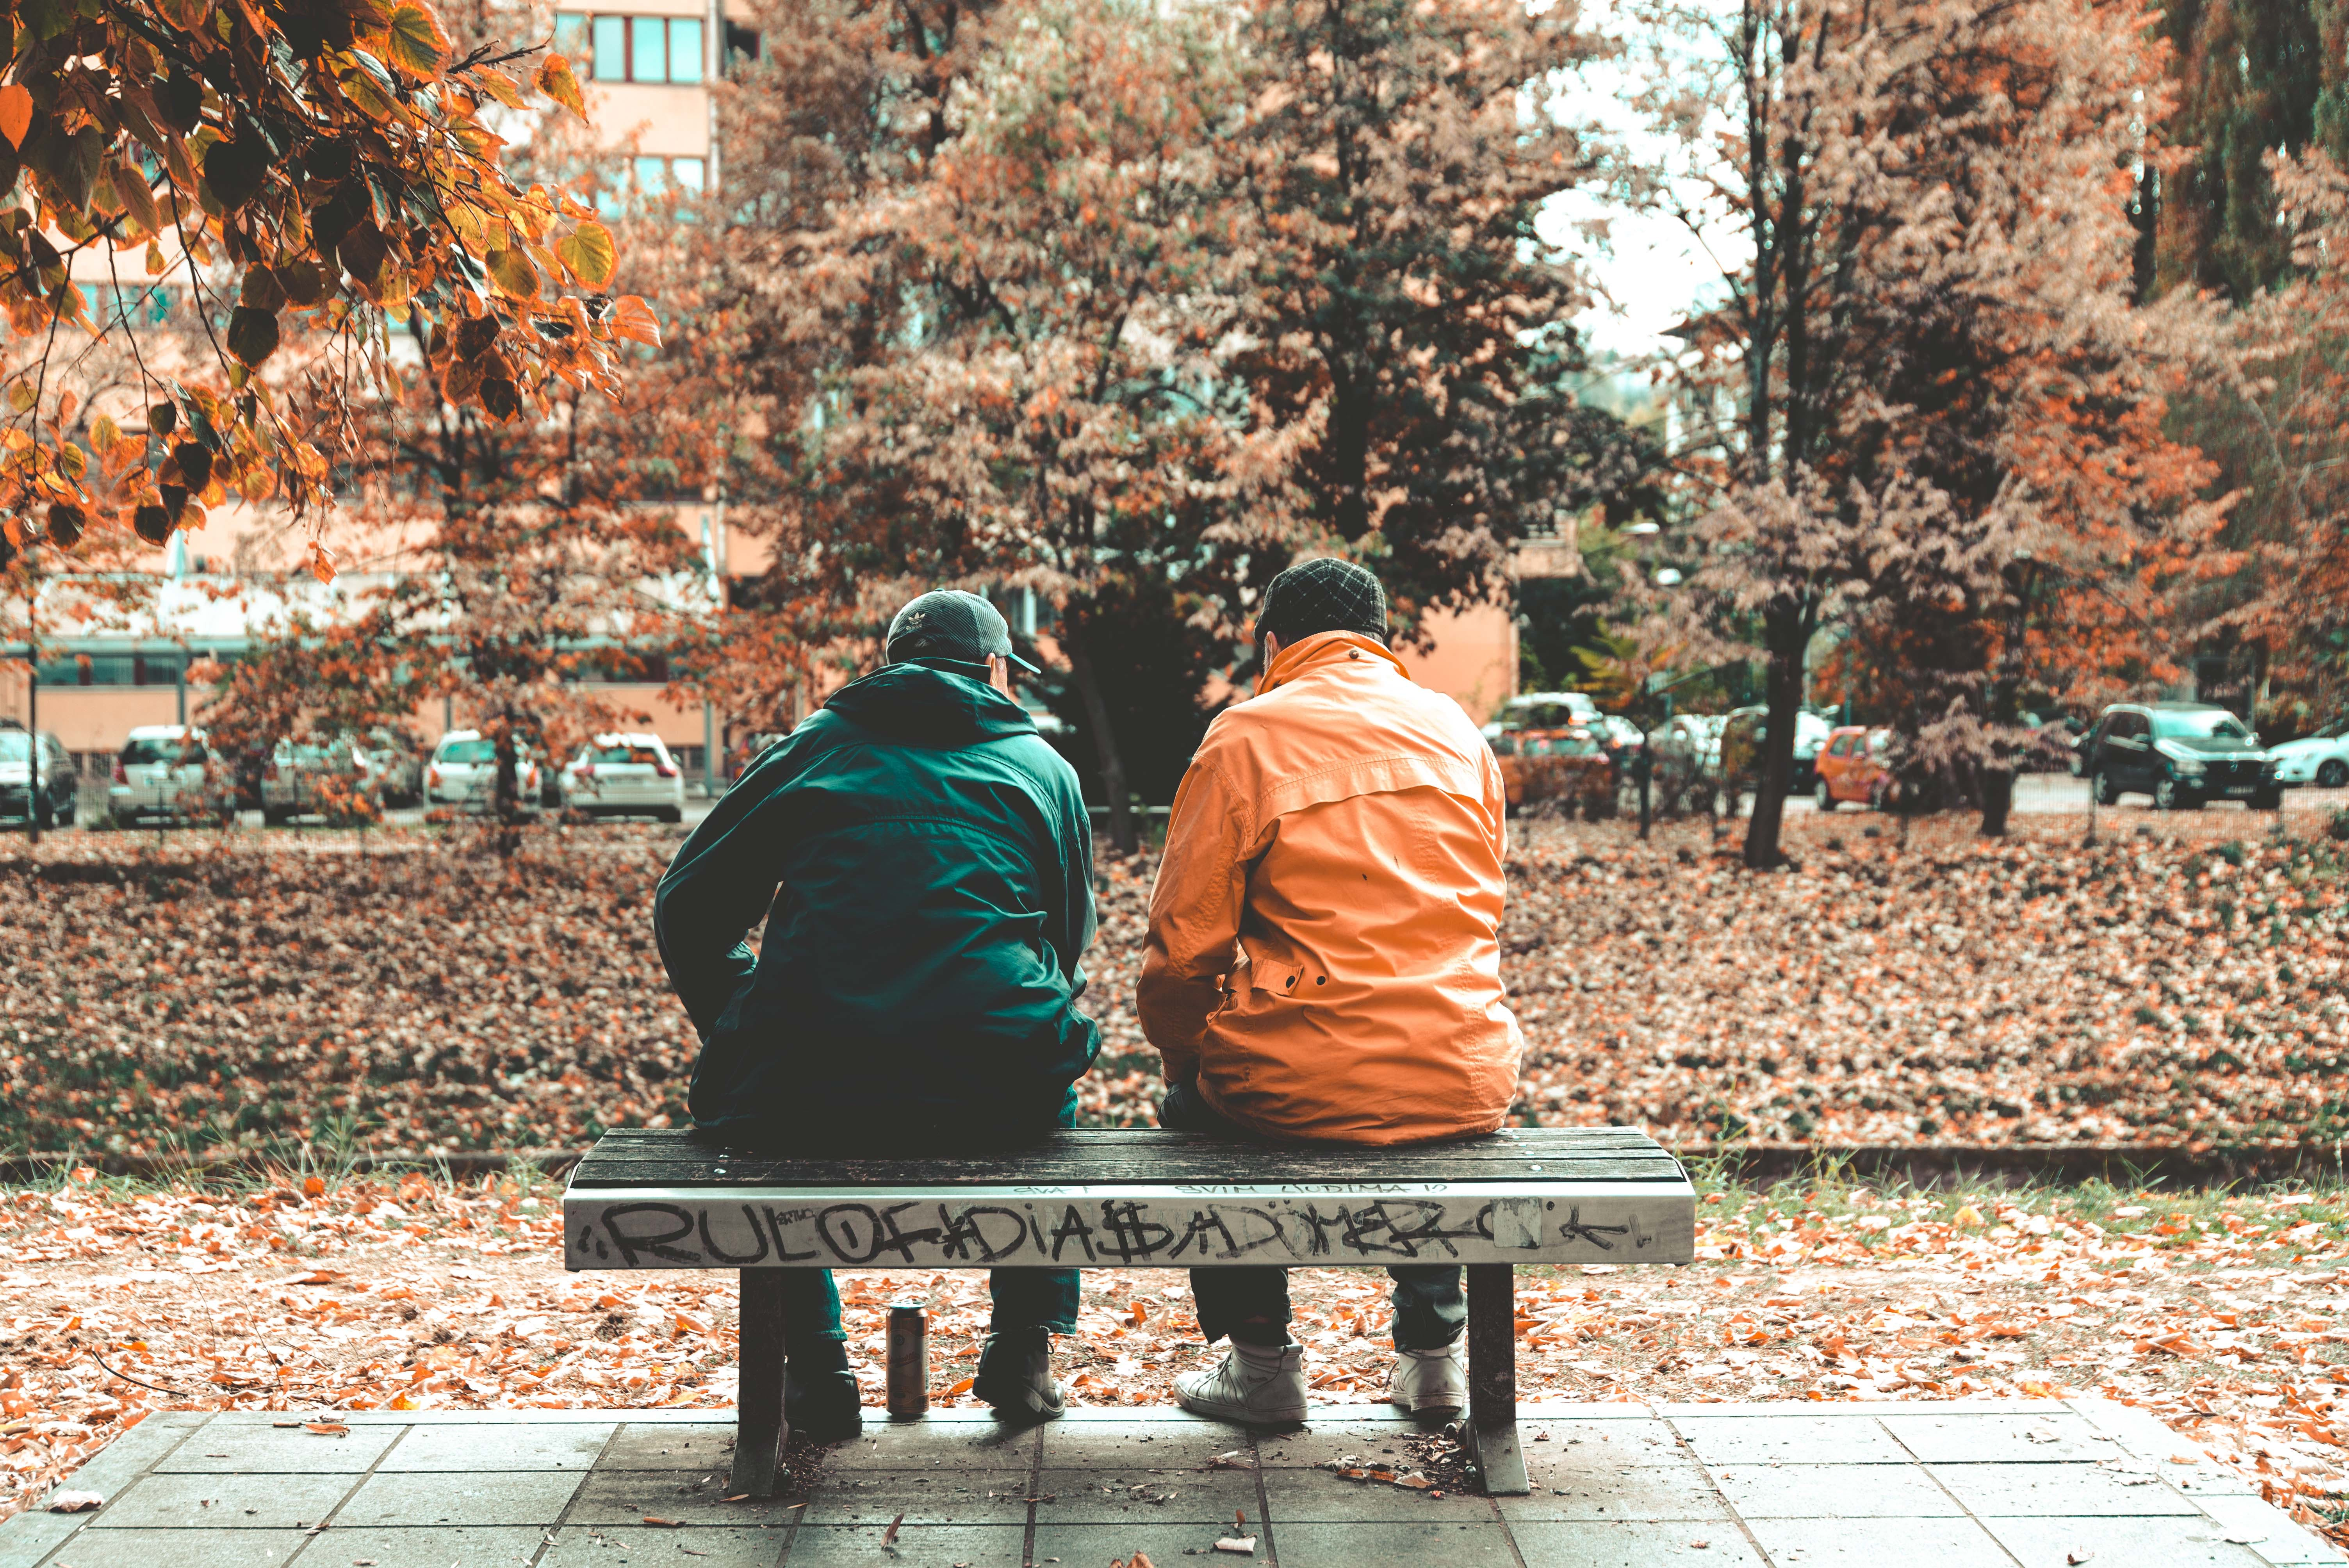 Two Men Sitting on Bench